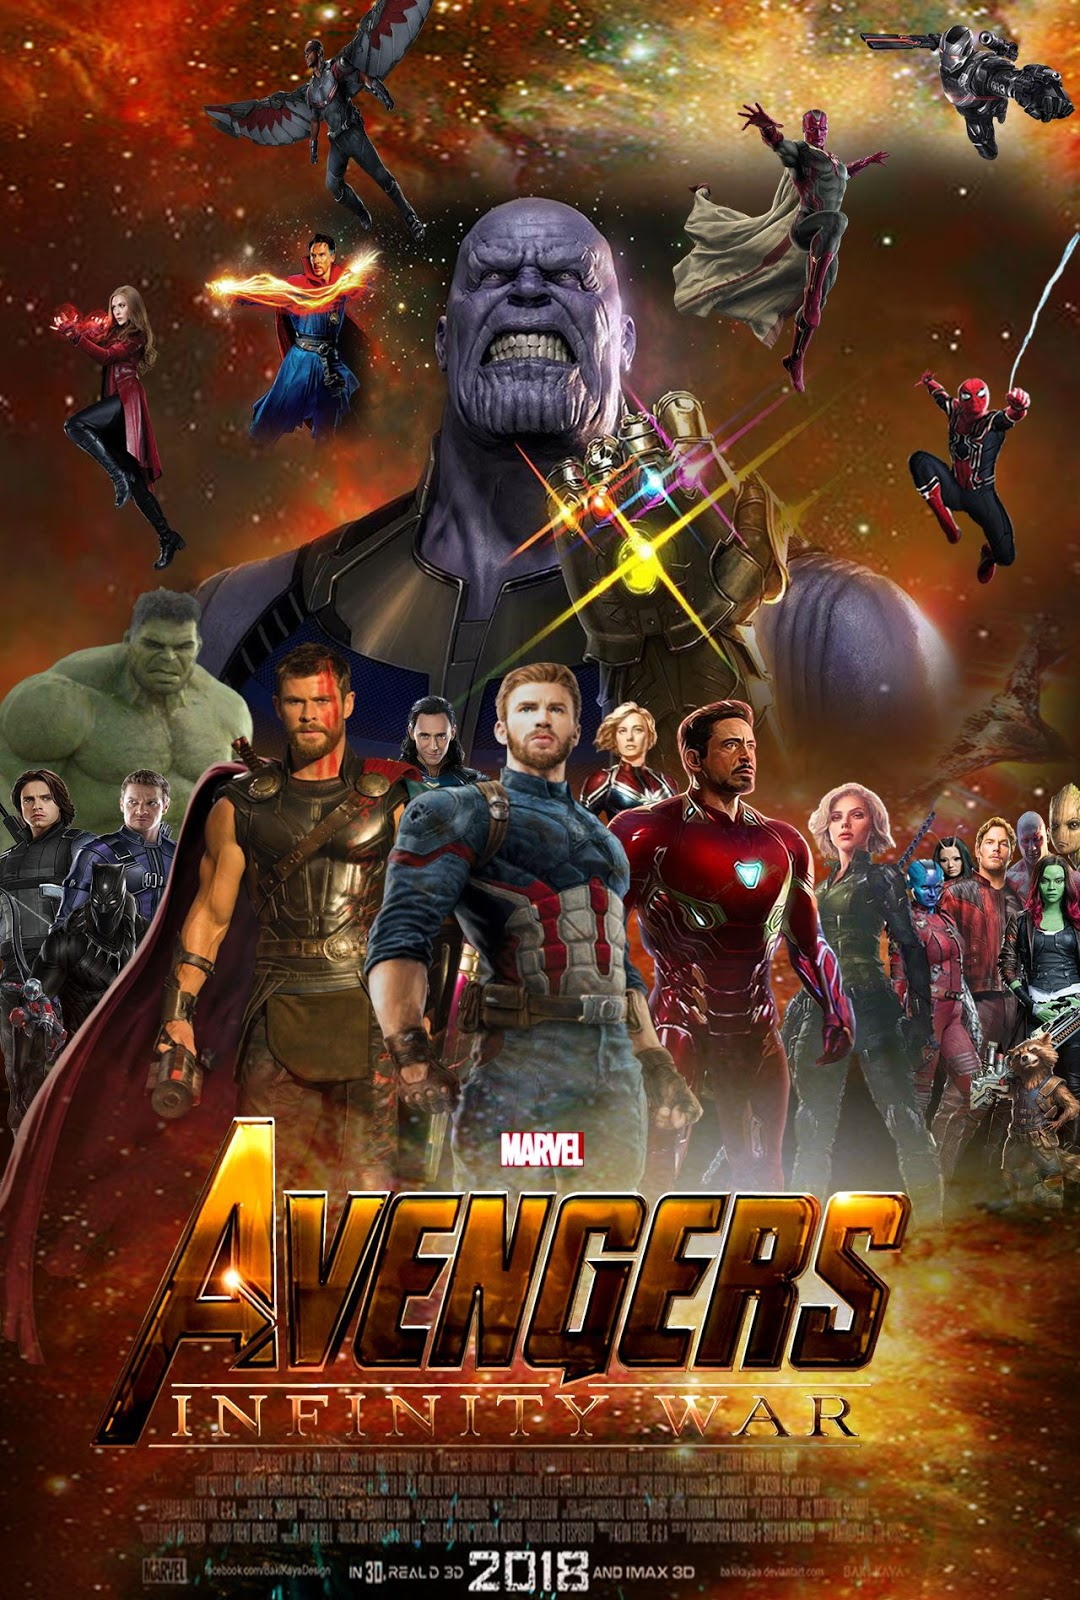 Avengers Infinity War 2018 Hindi Dubbed Movie Free Download